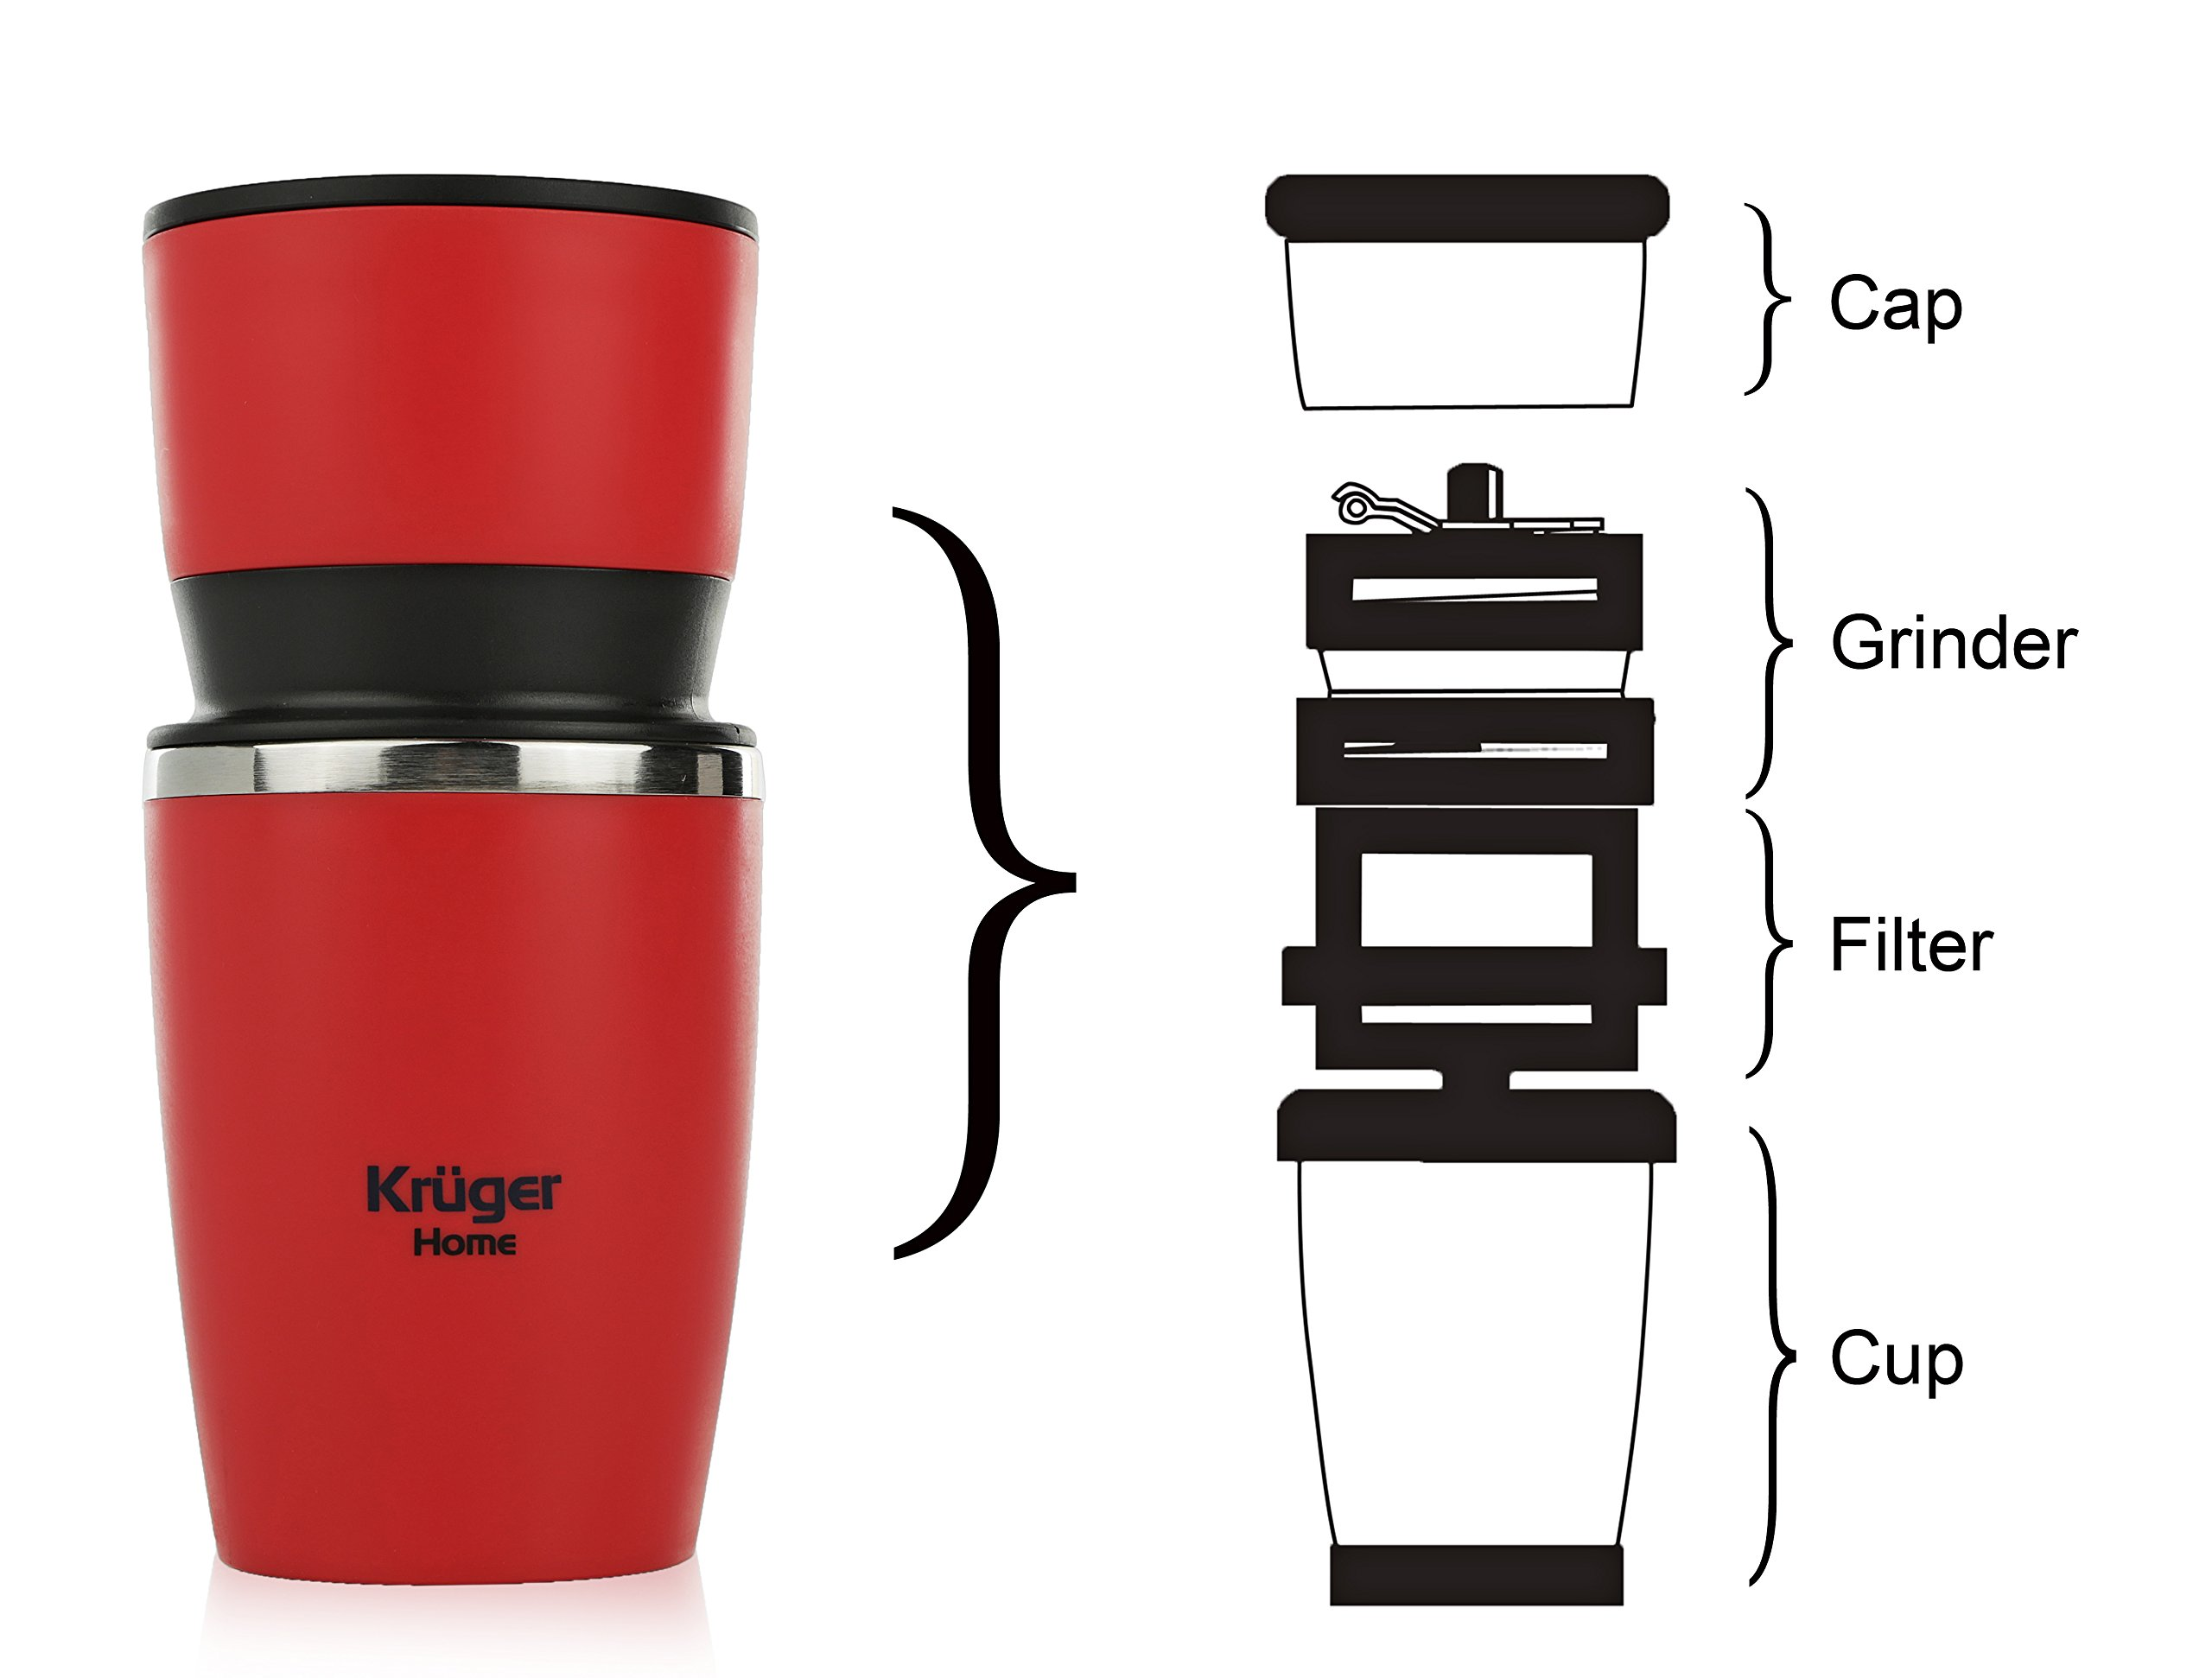 Kruger Home Travel Coffee Maker with Mug - All in One Pour Over Coffee Maker with Coffee Grinder, Coffee Filter, and Travel Coffee Mug with Lid, by